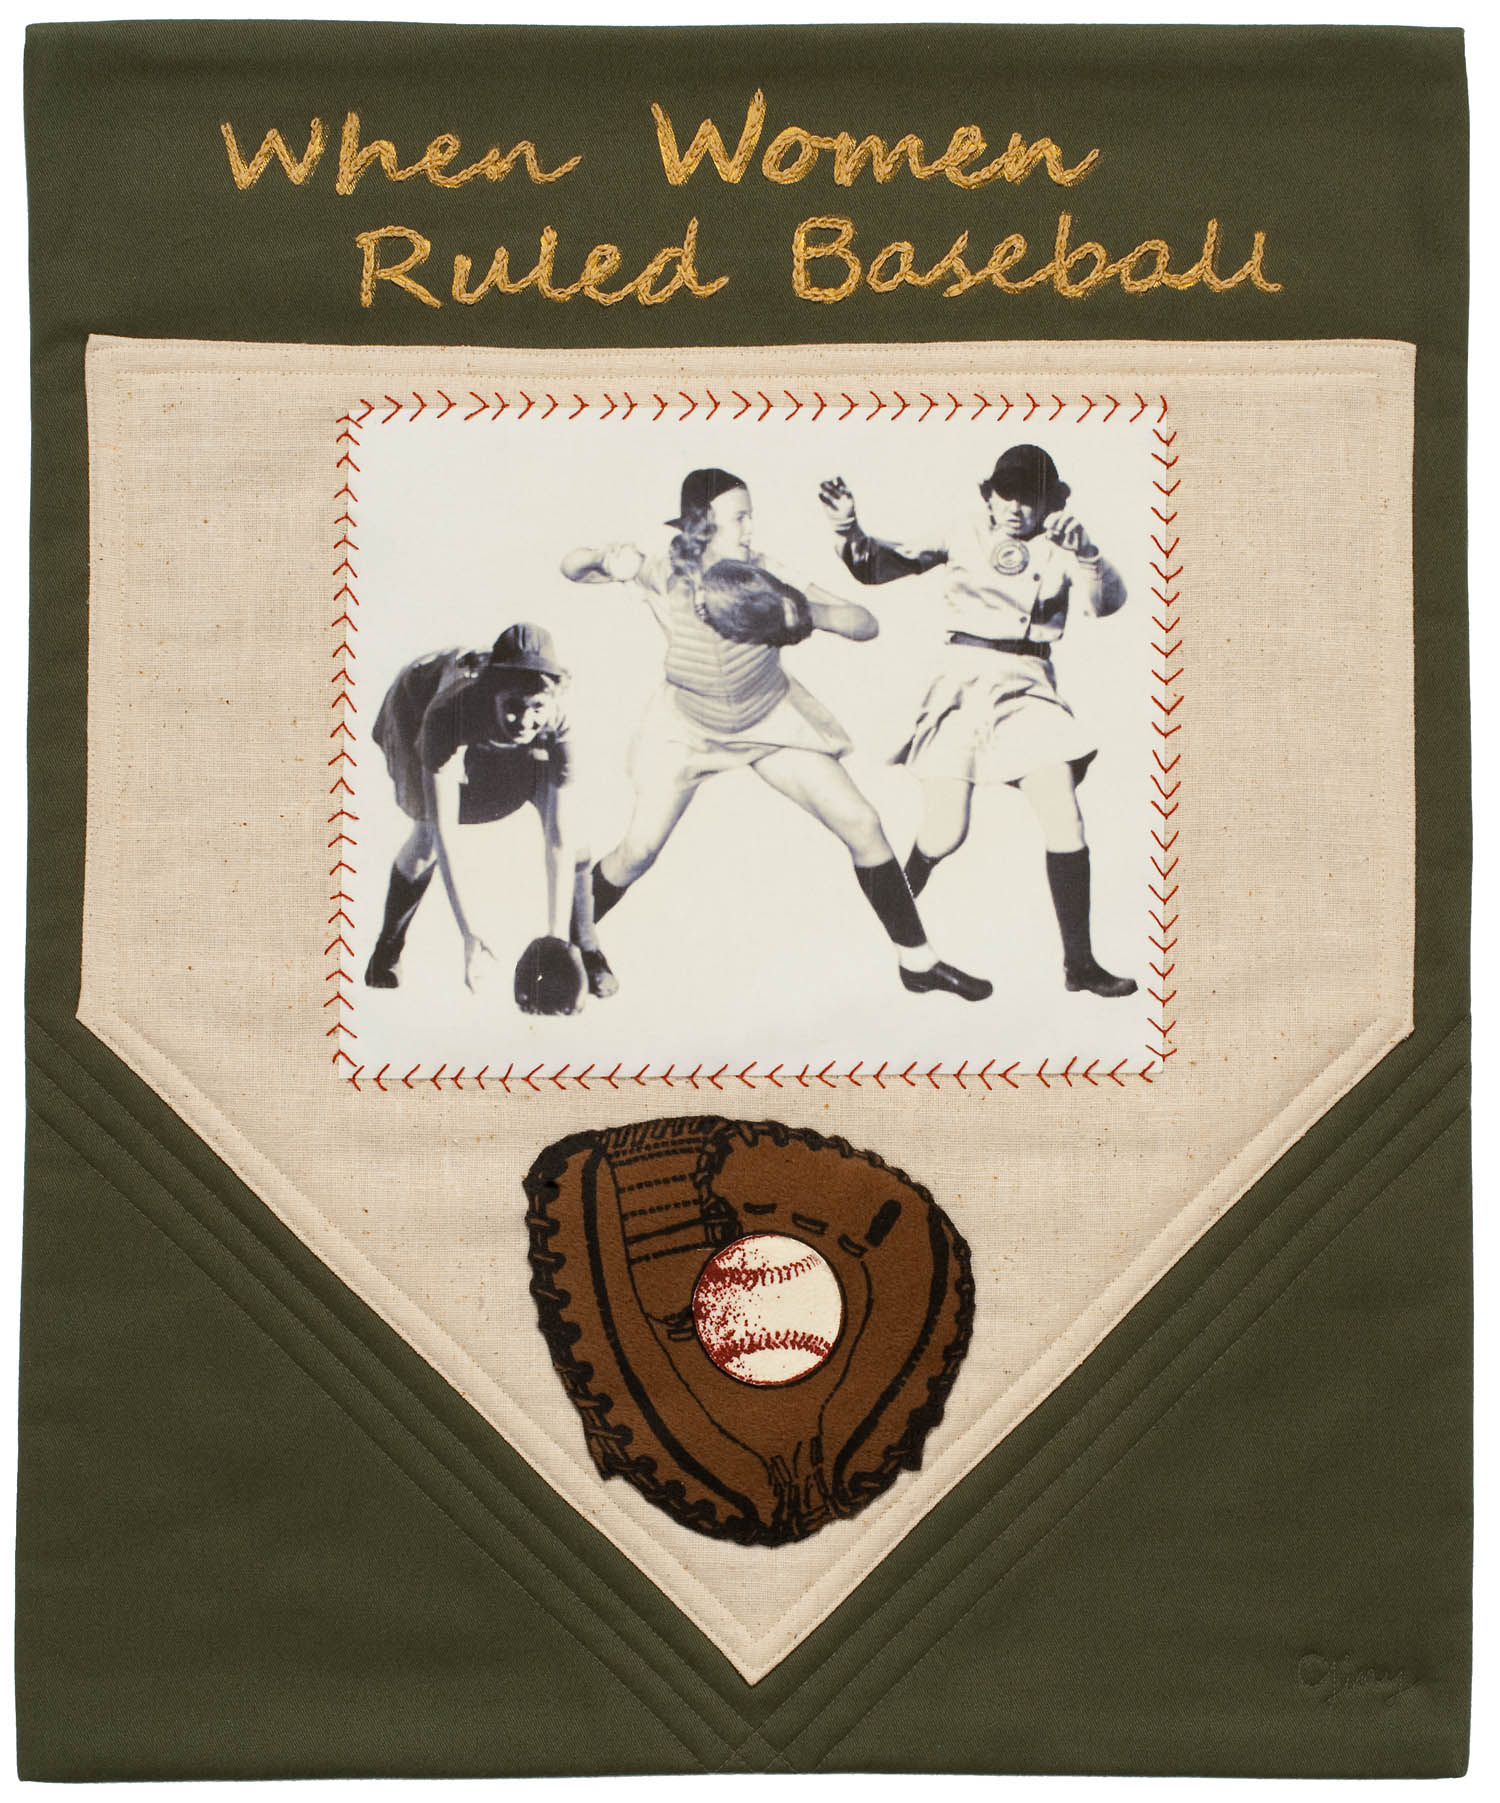 "When Women Ruled Baseball, 18"" wide x 22"" high, 2014                                                                                                                                                                                                                                                                                                                                                                                                                                                                                                                                                                                                                                                                                                                                                                                         /* Style Definitions */  table.MsoNormalTable 	{mso-style-name:""Table Normal""; 	mso-tstyle-rowband-size:0; 	mso-tstyle-colband-size:0; 	mso-style-noshow:yes; 	mso-style-priority:99; 	mso-style-parent:""""; 	mso-padding-alt:0in 5.4pt 0in 5.4pt; 	mso-para-margin:0in; 	mso-para-margin-bottom:.0001pt; 	mso-pagination:widow-orphan; 	font-size:10.0pt; 	font-family:""Times New Roman"",""serif""; 	border:none;}"